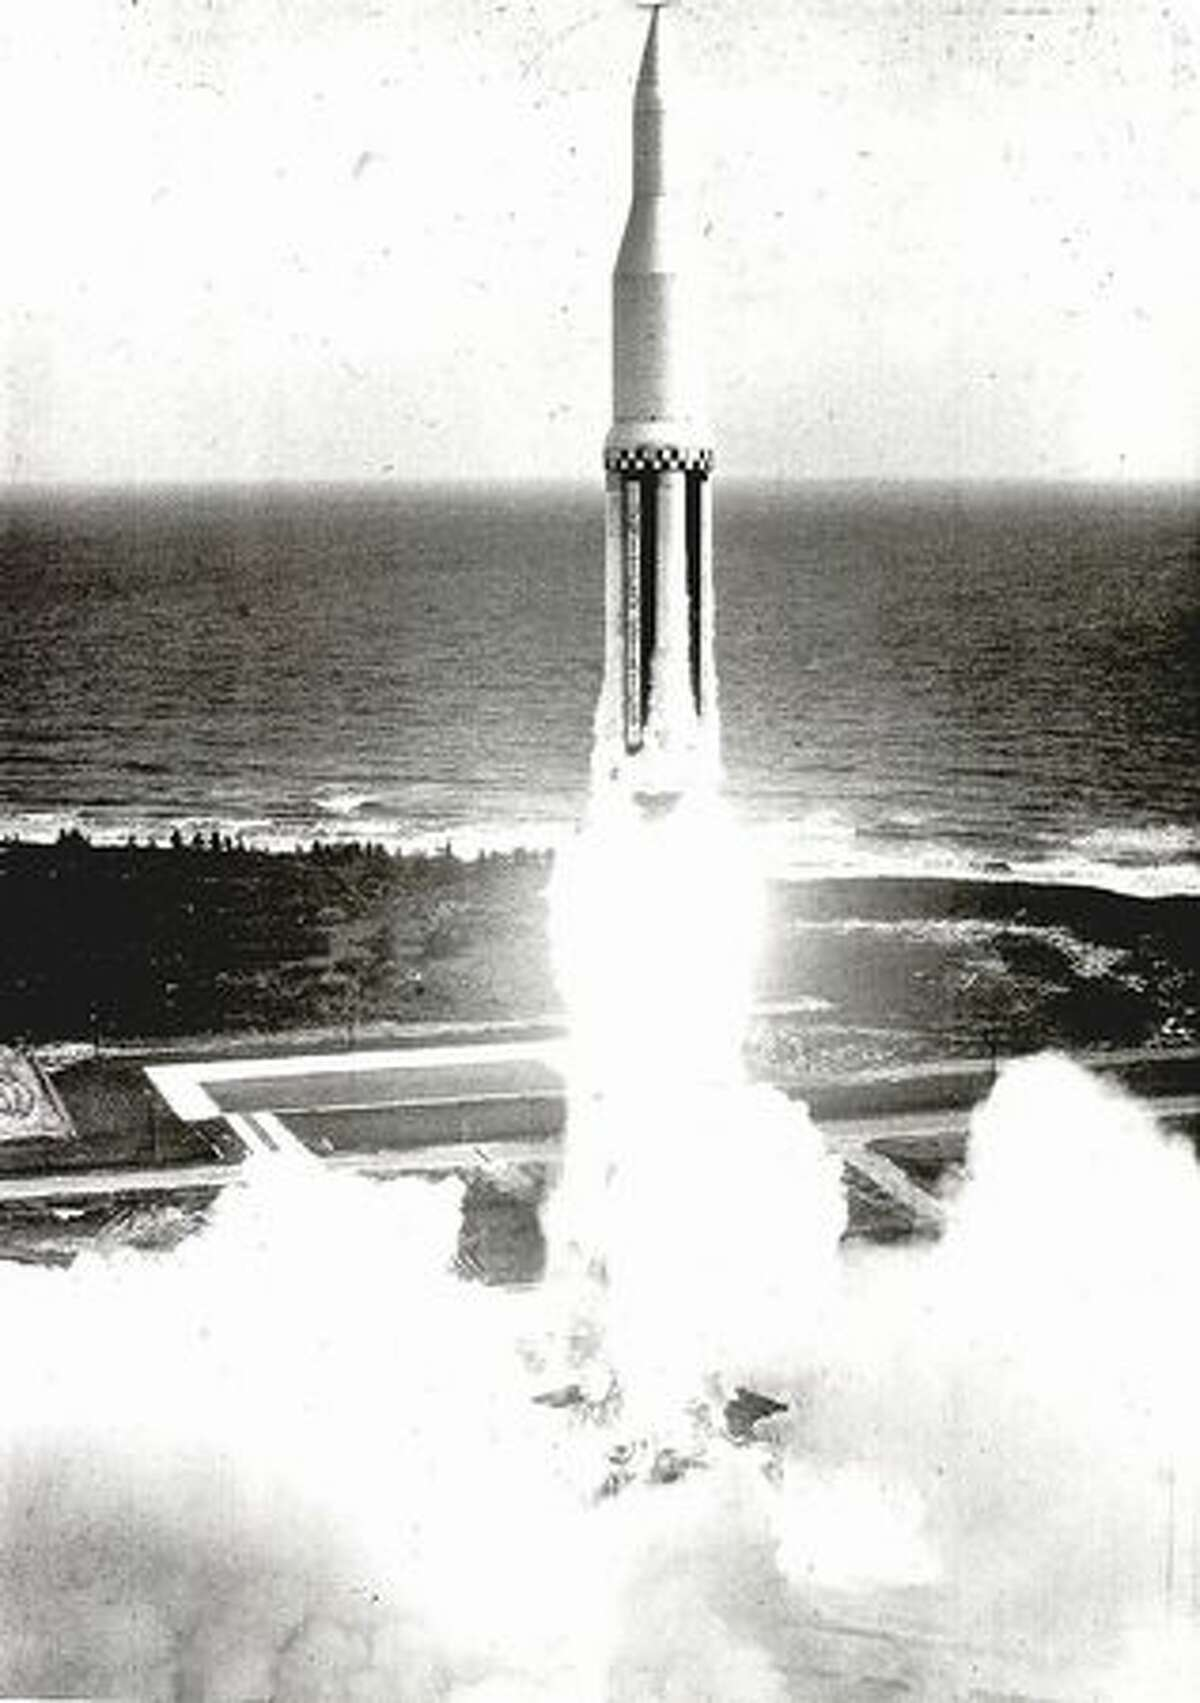 The first Saturn rocket launches on Oct. 27, 1961, from Cape Canaveral, Fla. The rocket flew a flawless 215-mile ballistic trajectory. It was 162 feet-tall, weighed 925,000 pounds and employed a dummy second stage.